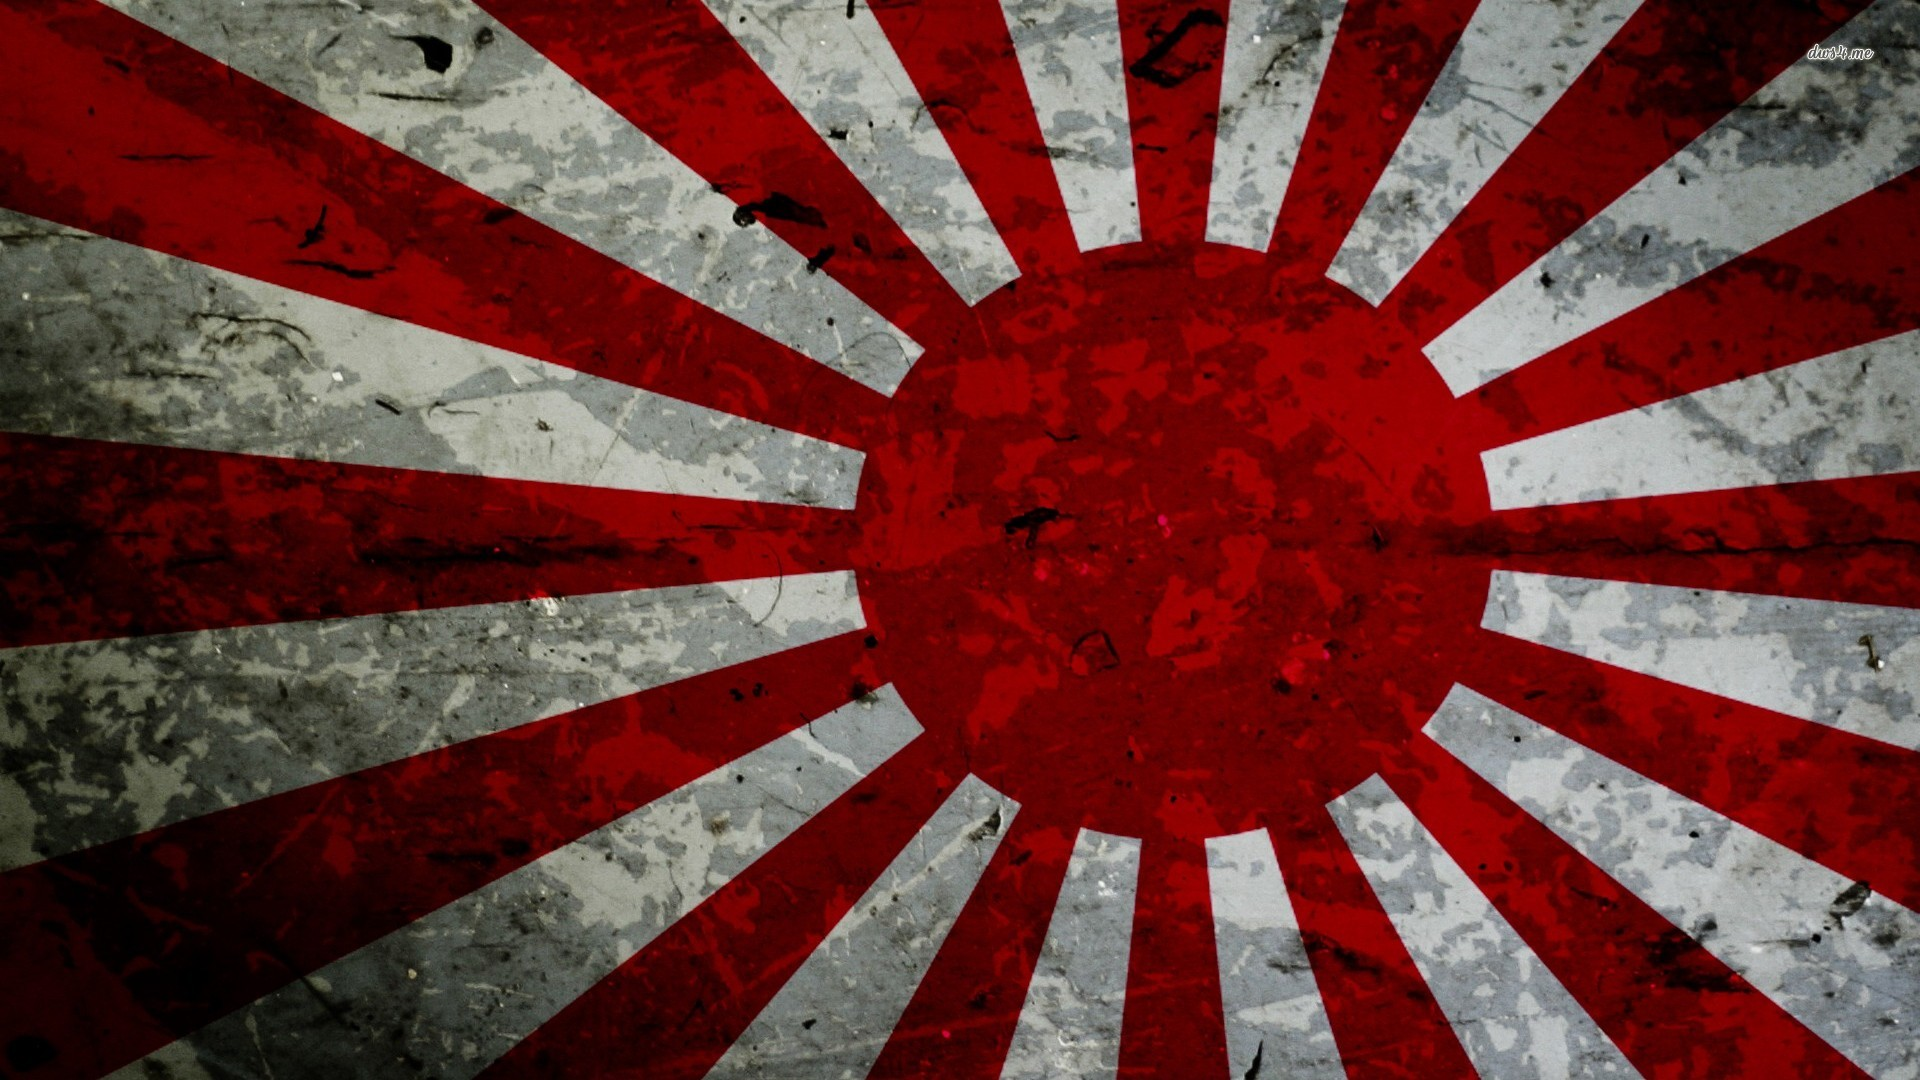 Old Enemies: Tensions Rise Between Japan & China | State Magazine